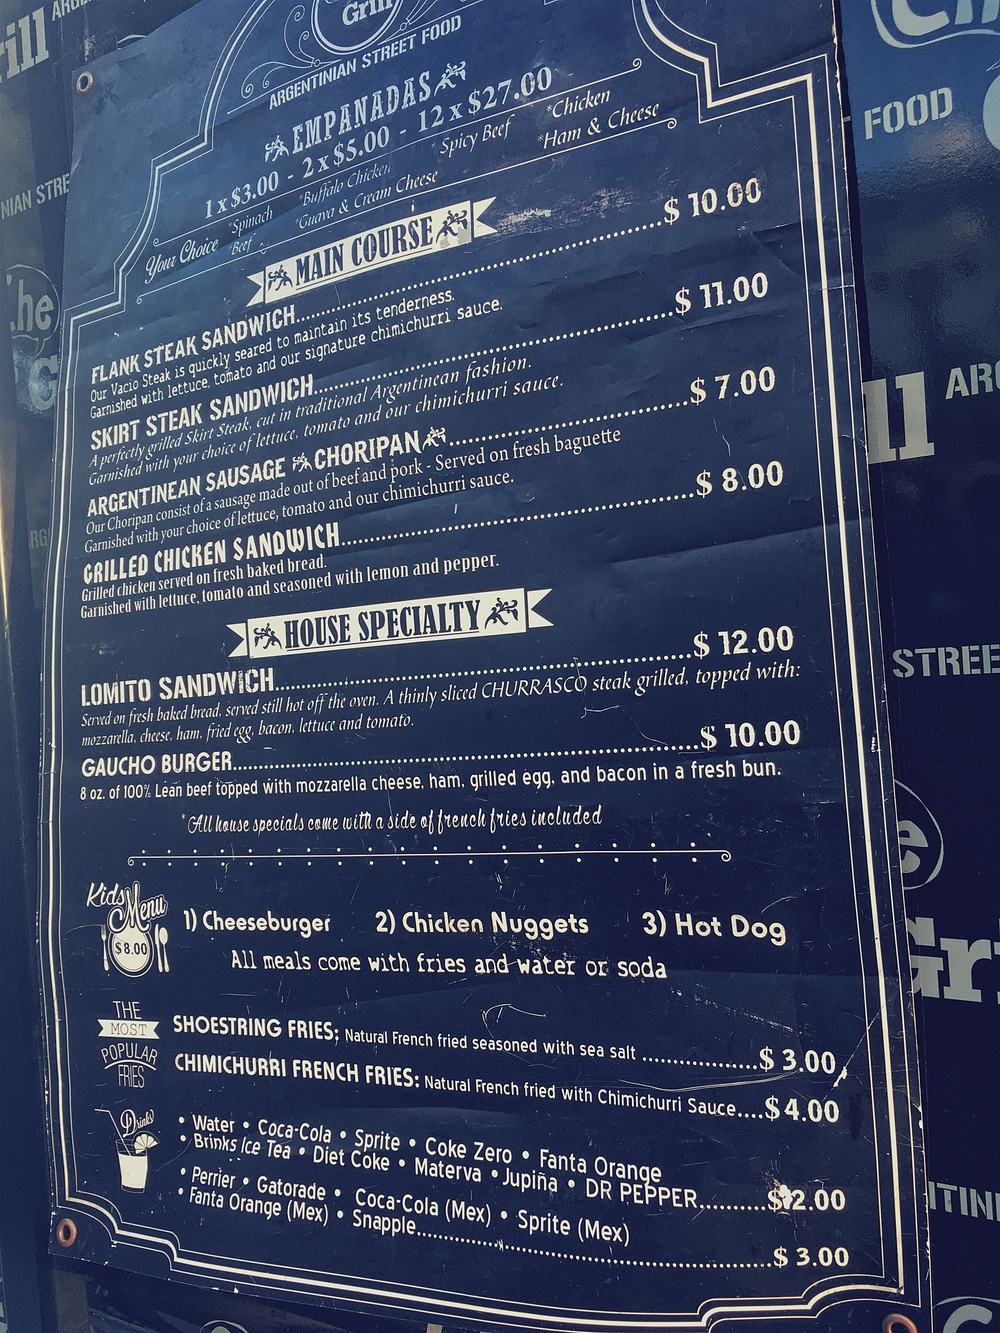 Che Grill Food Truck Menu and Price